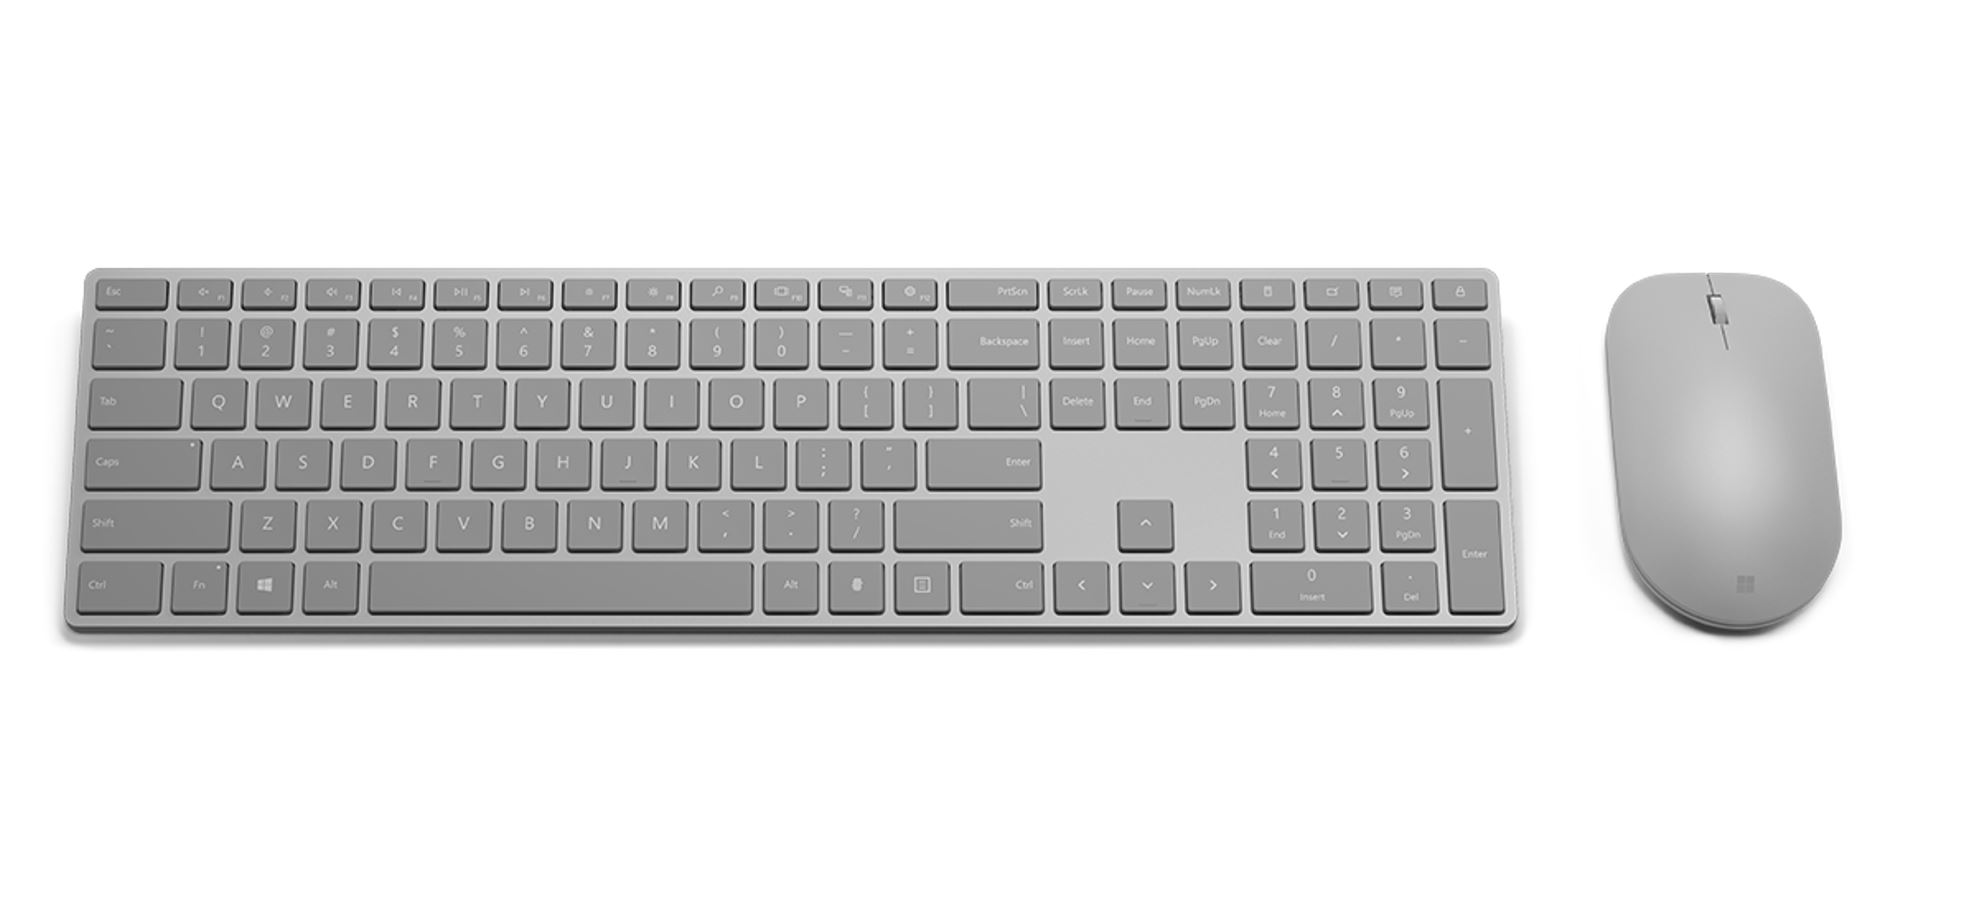 microsoft modern keyboard with fingerprint id and microsoft modern mouse